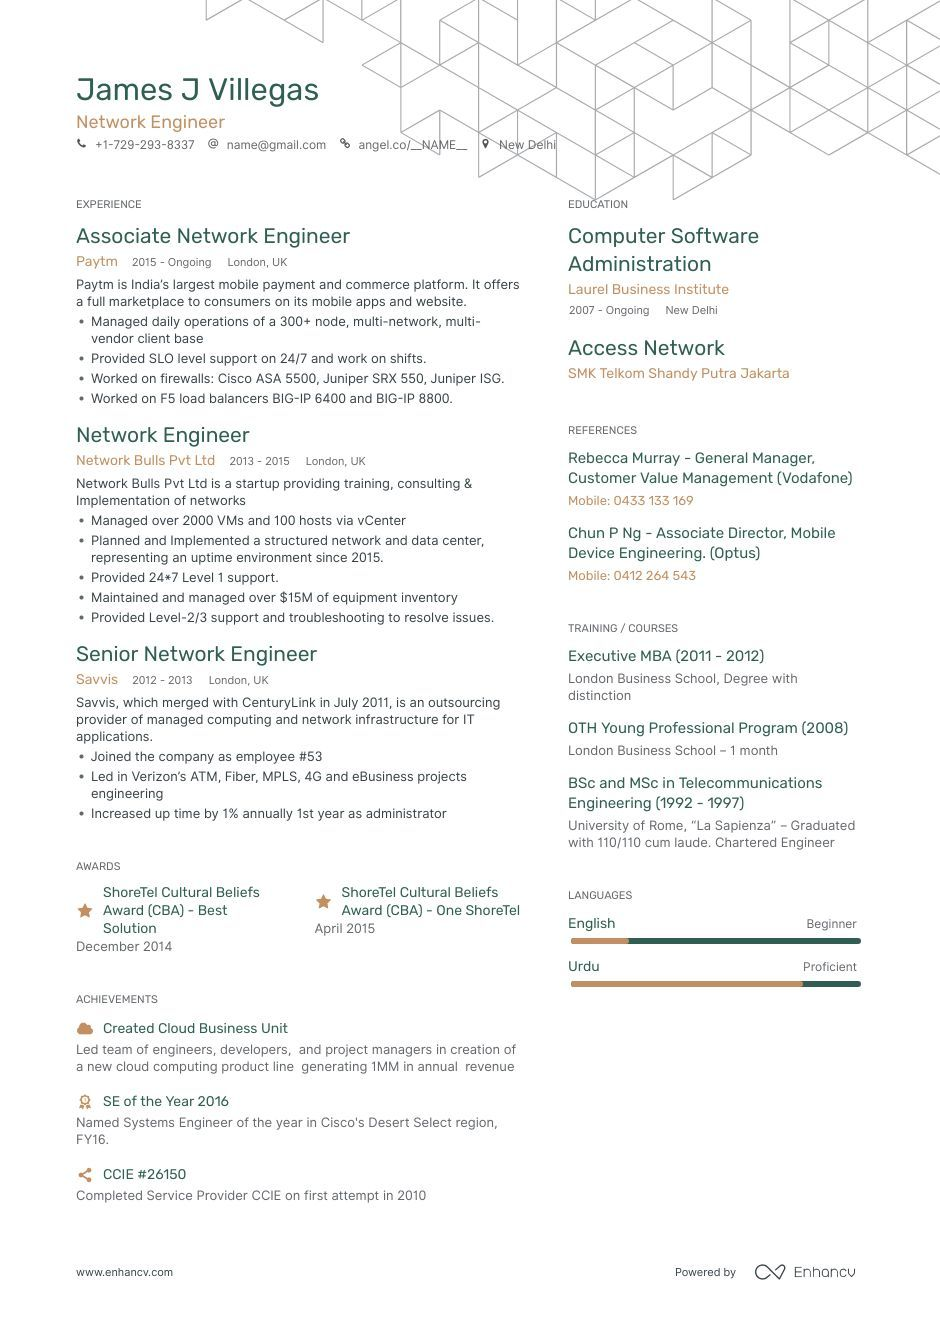 Network Engineer Resume Samples with 8+ professional